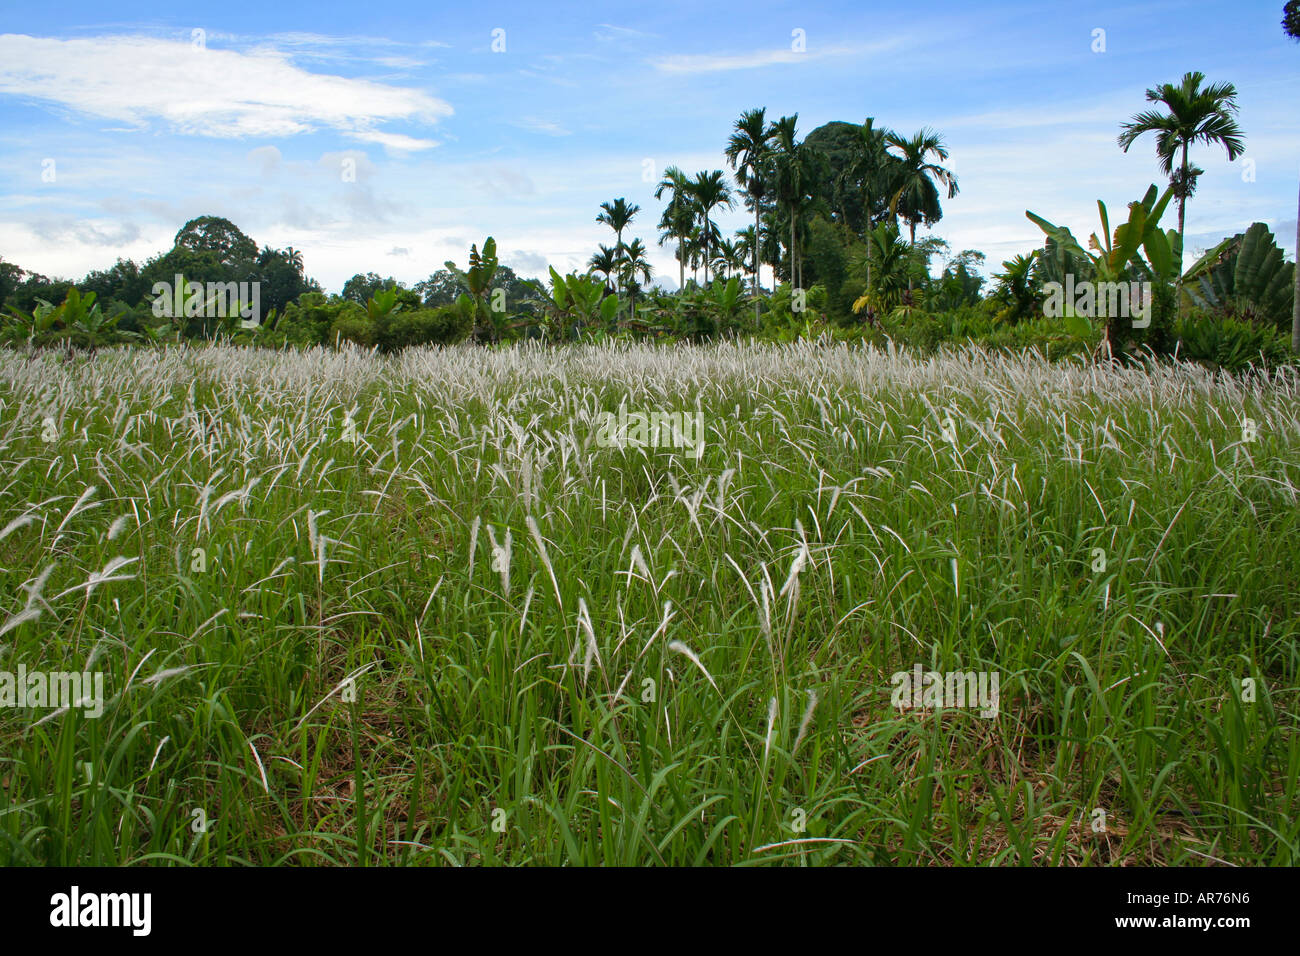 Rhizomatous grass (imperata cylindrica) known as Cogon grass(US),  blady grass (Australia) or lalang (Malaysia). - Stock Image